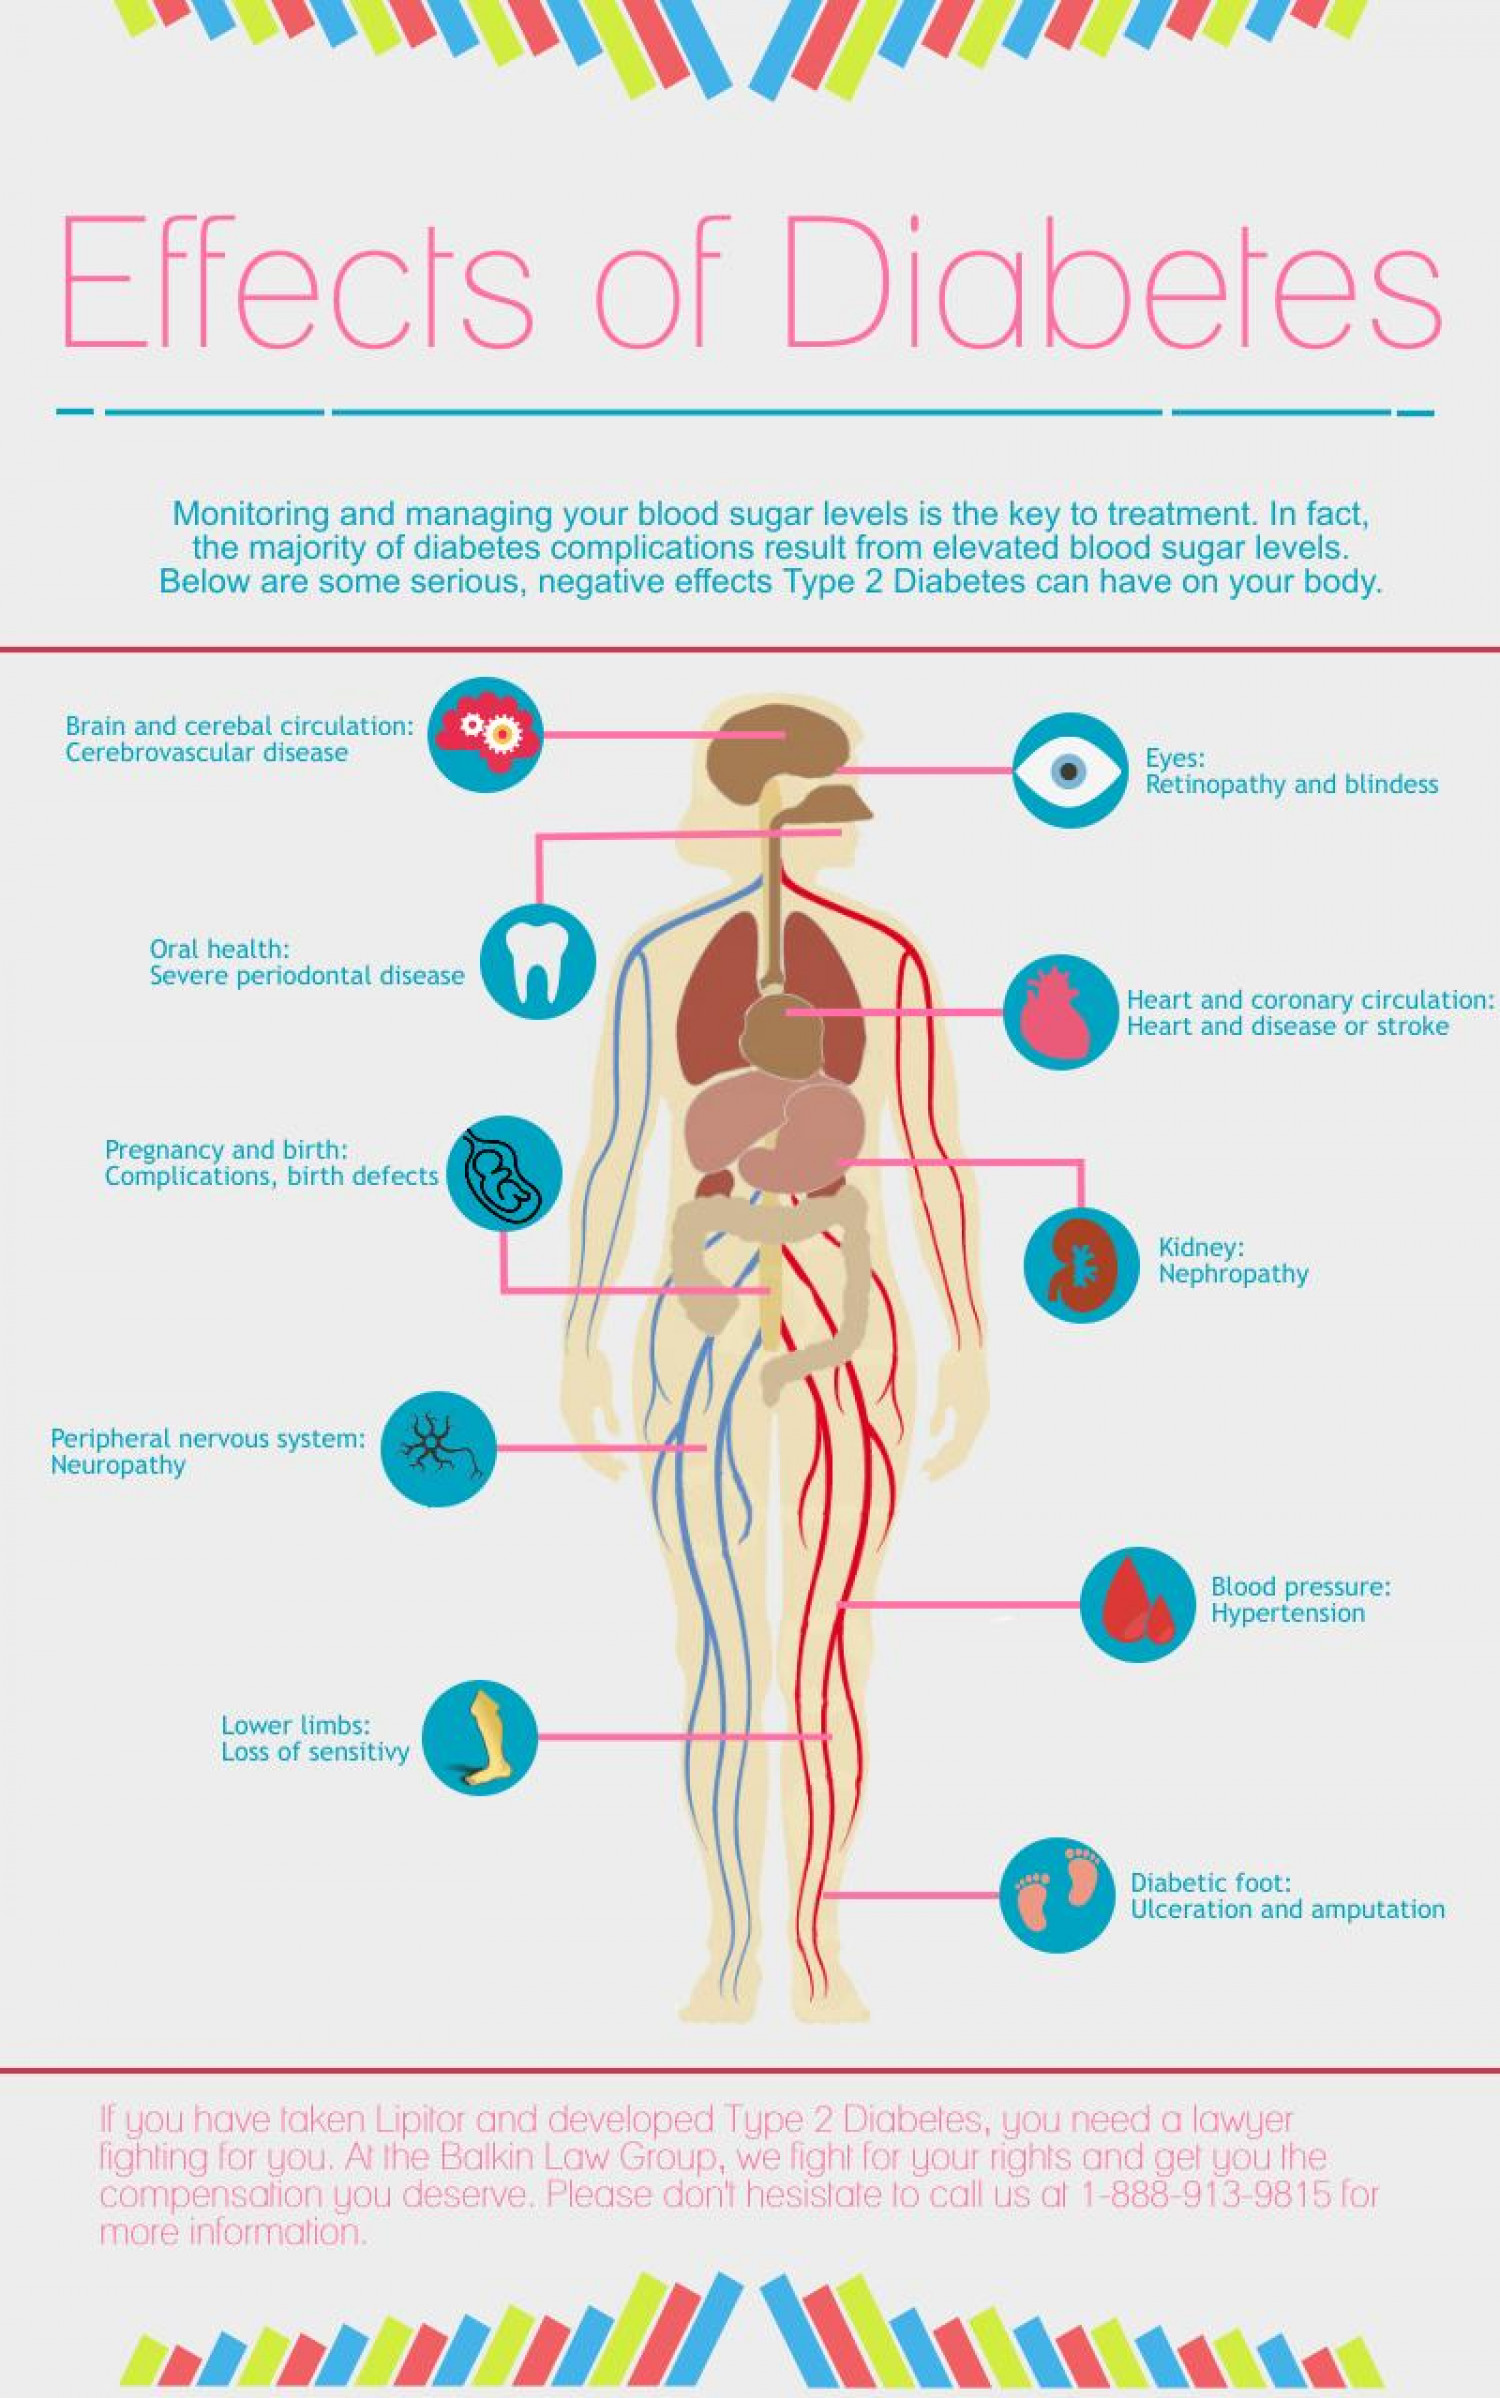 Effects of Diabetes Infographic